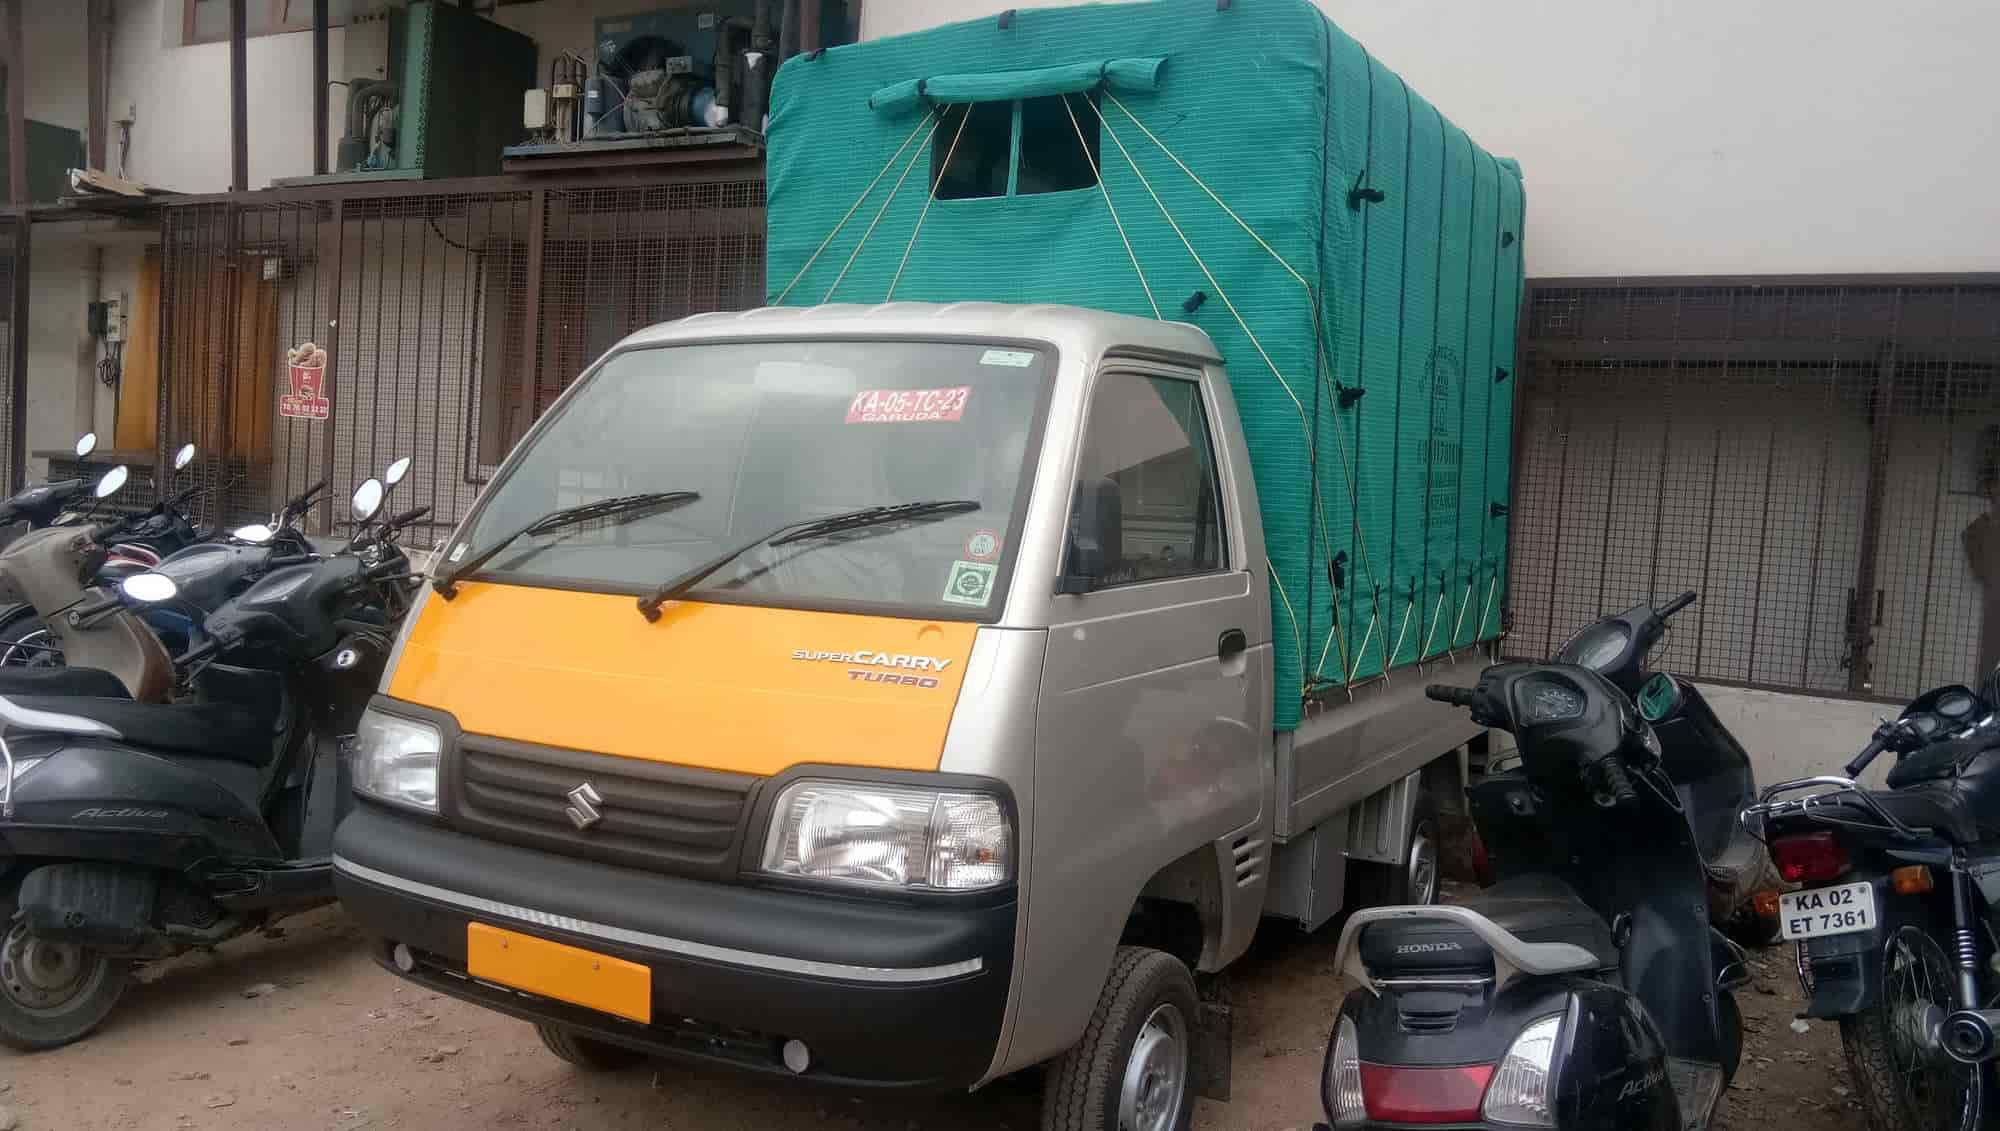 Maruti Suzuki Super Carry Photos Mission Road Bangalore Pictures